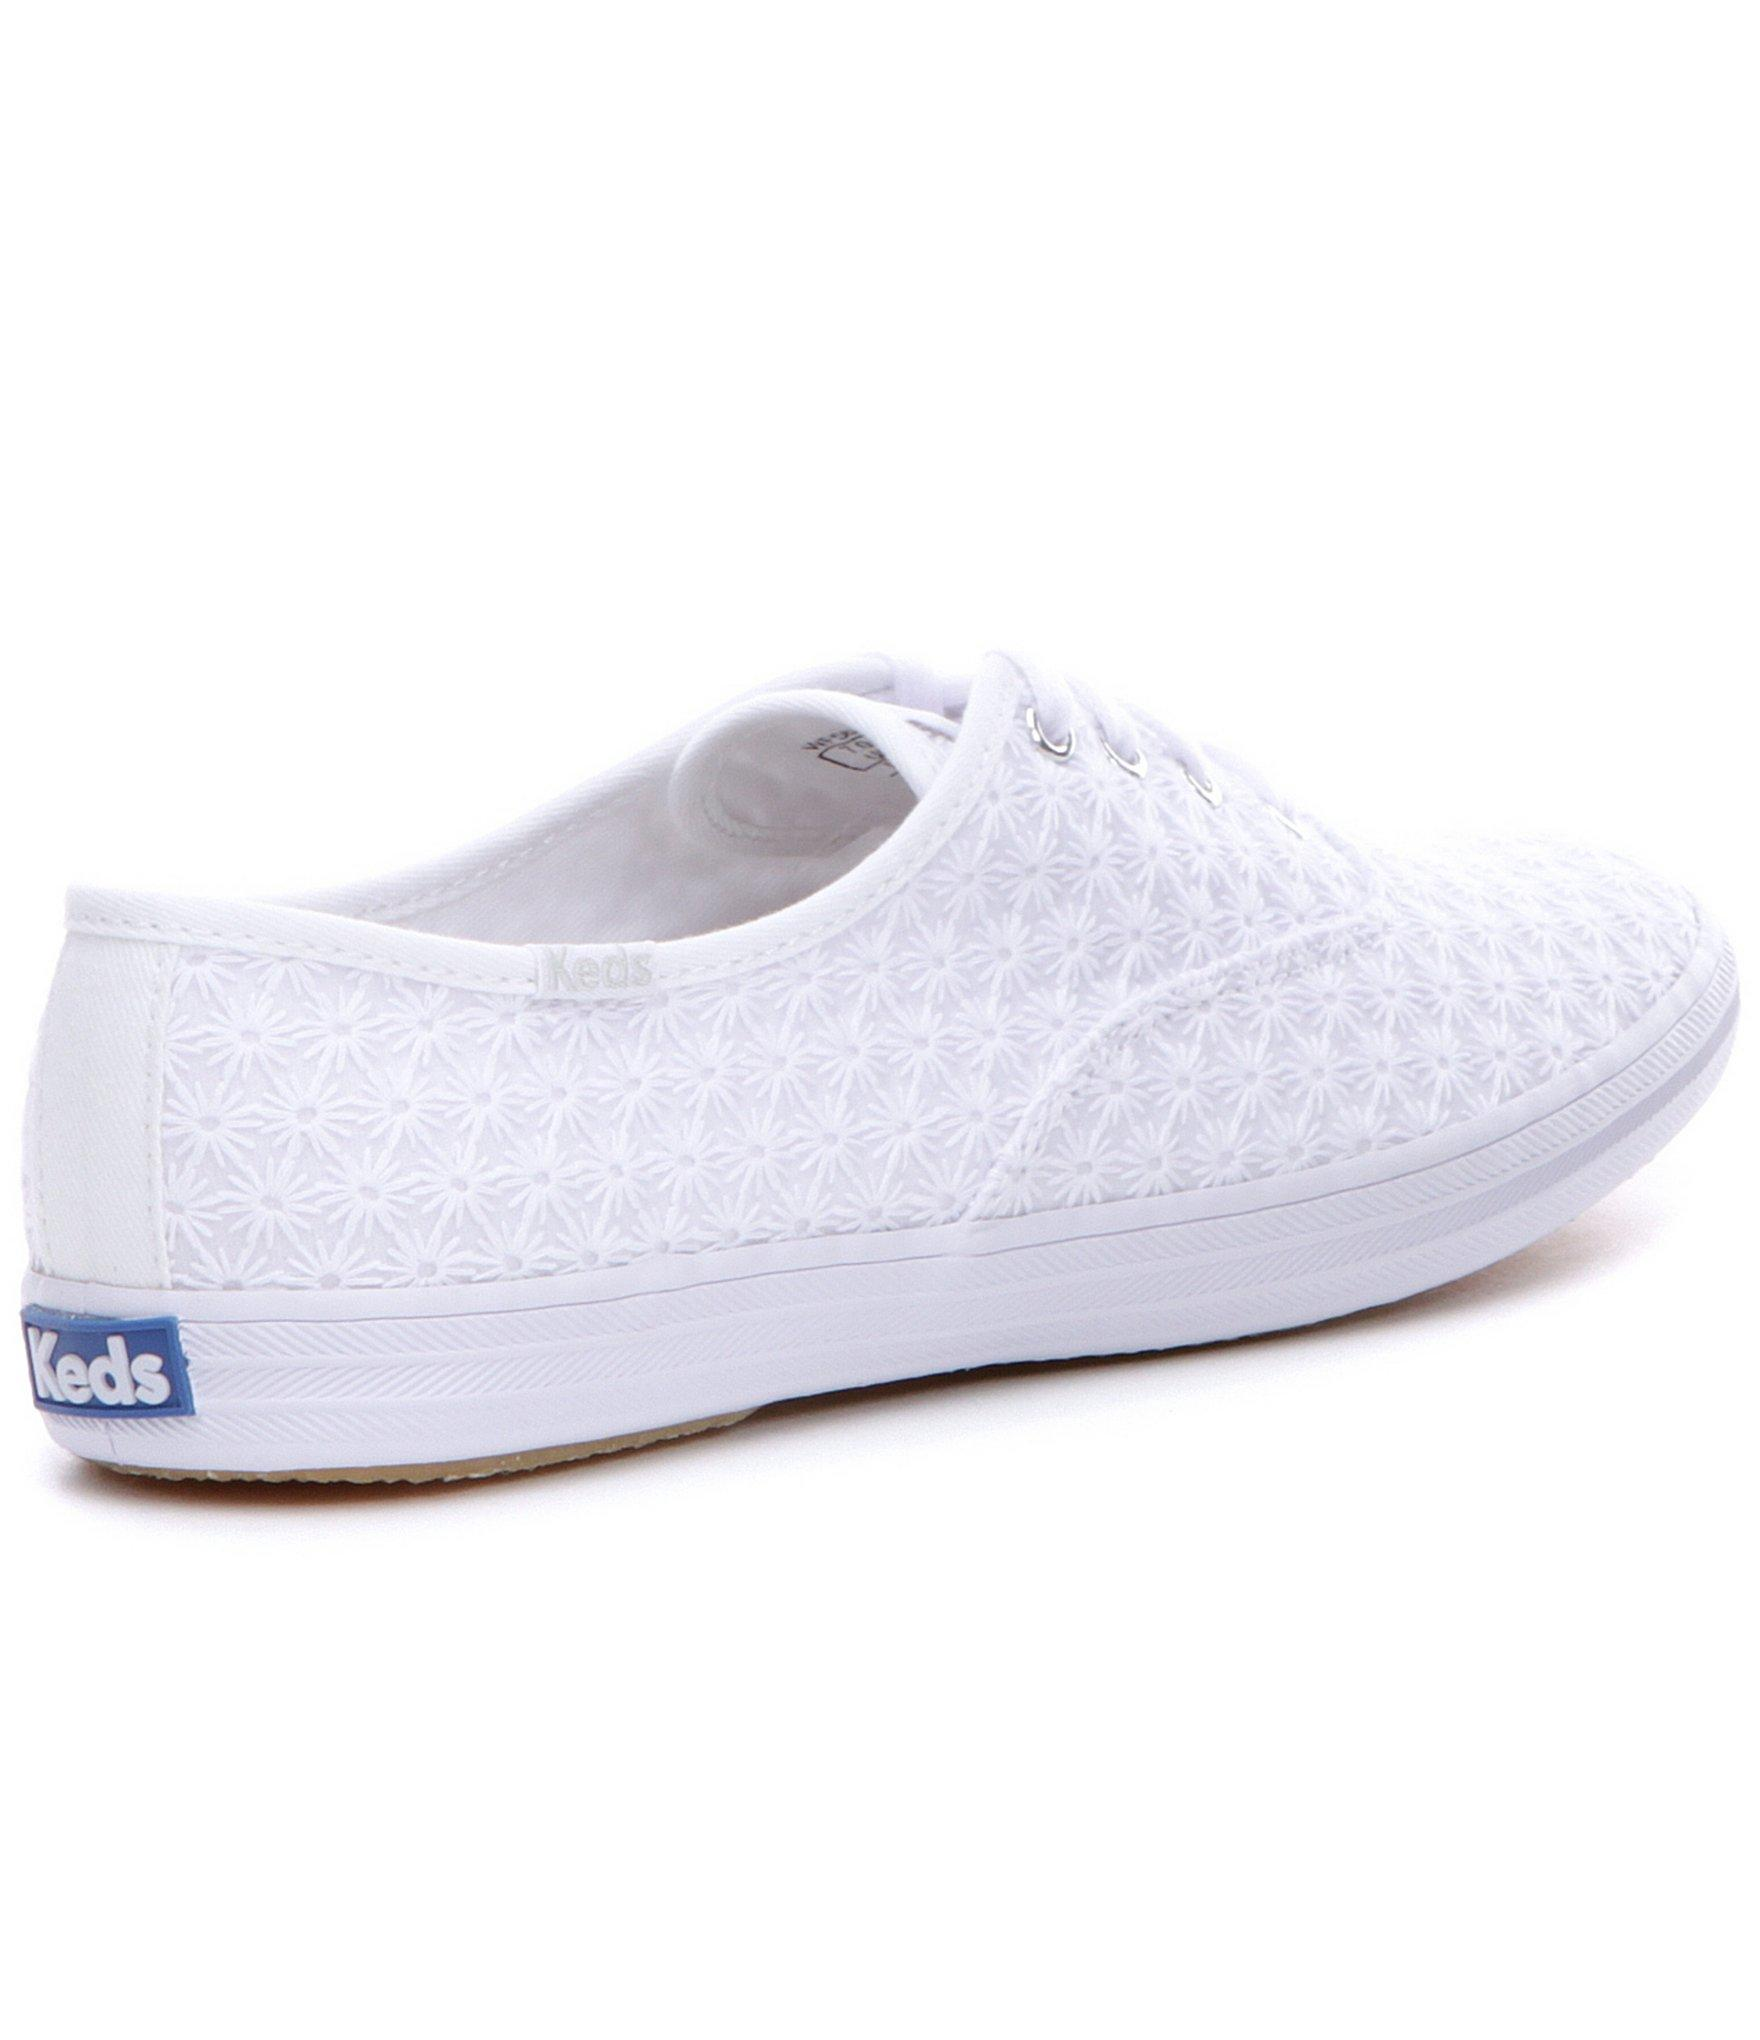 501086a940f Lyst - Keds Champion Mini Daisy Sneakers in White